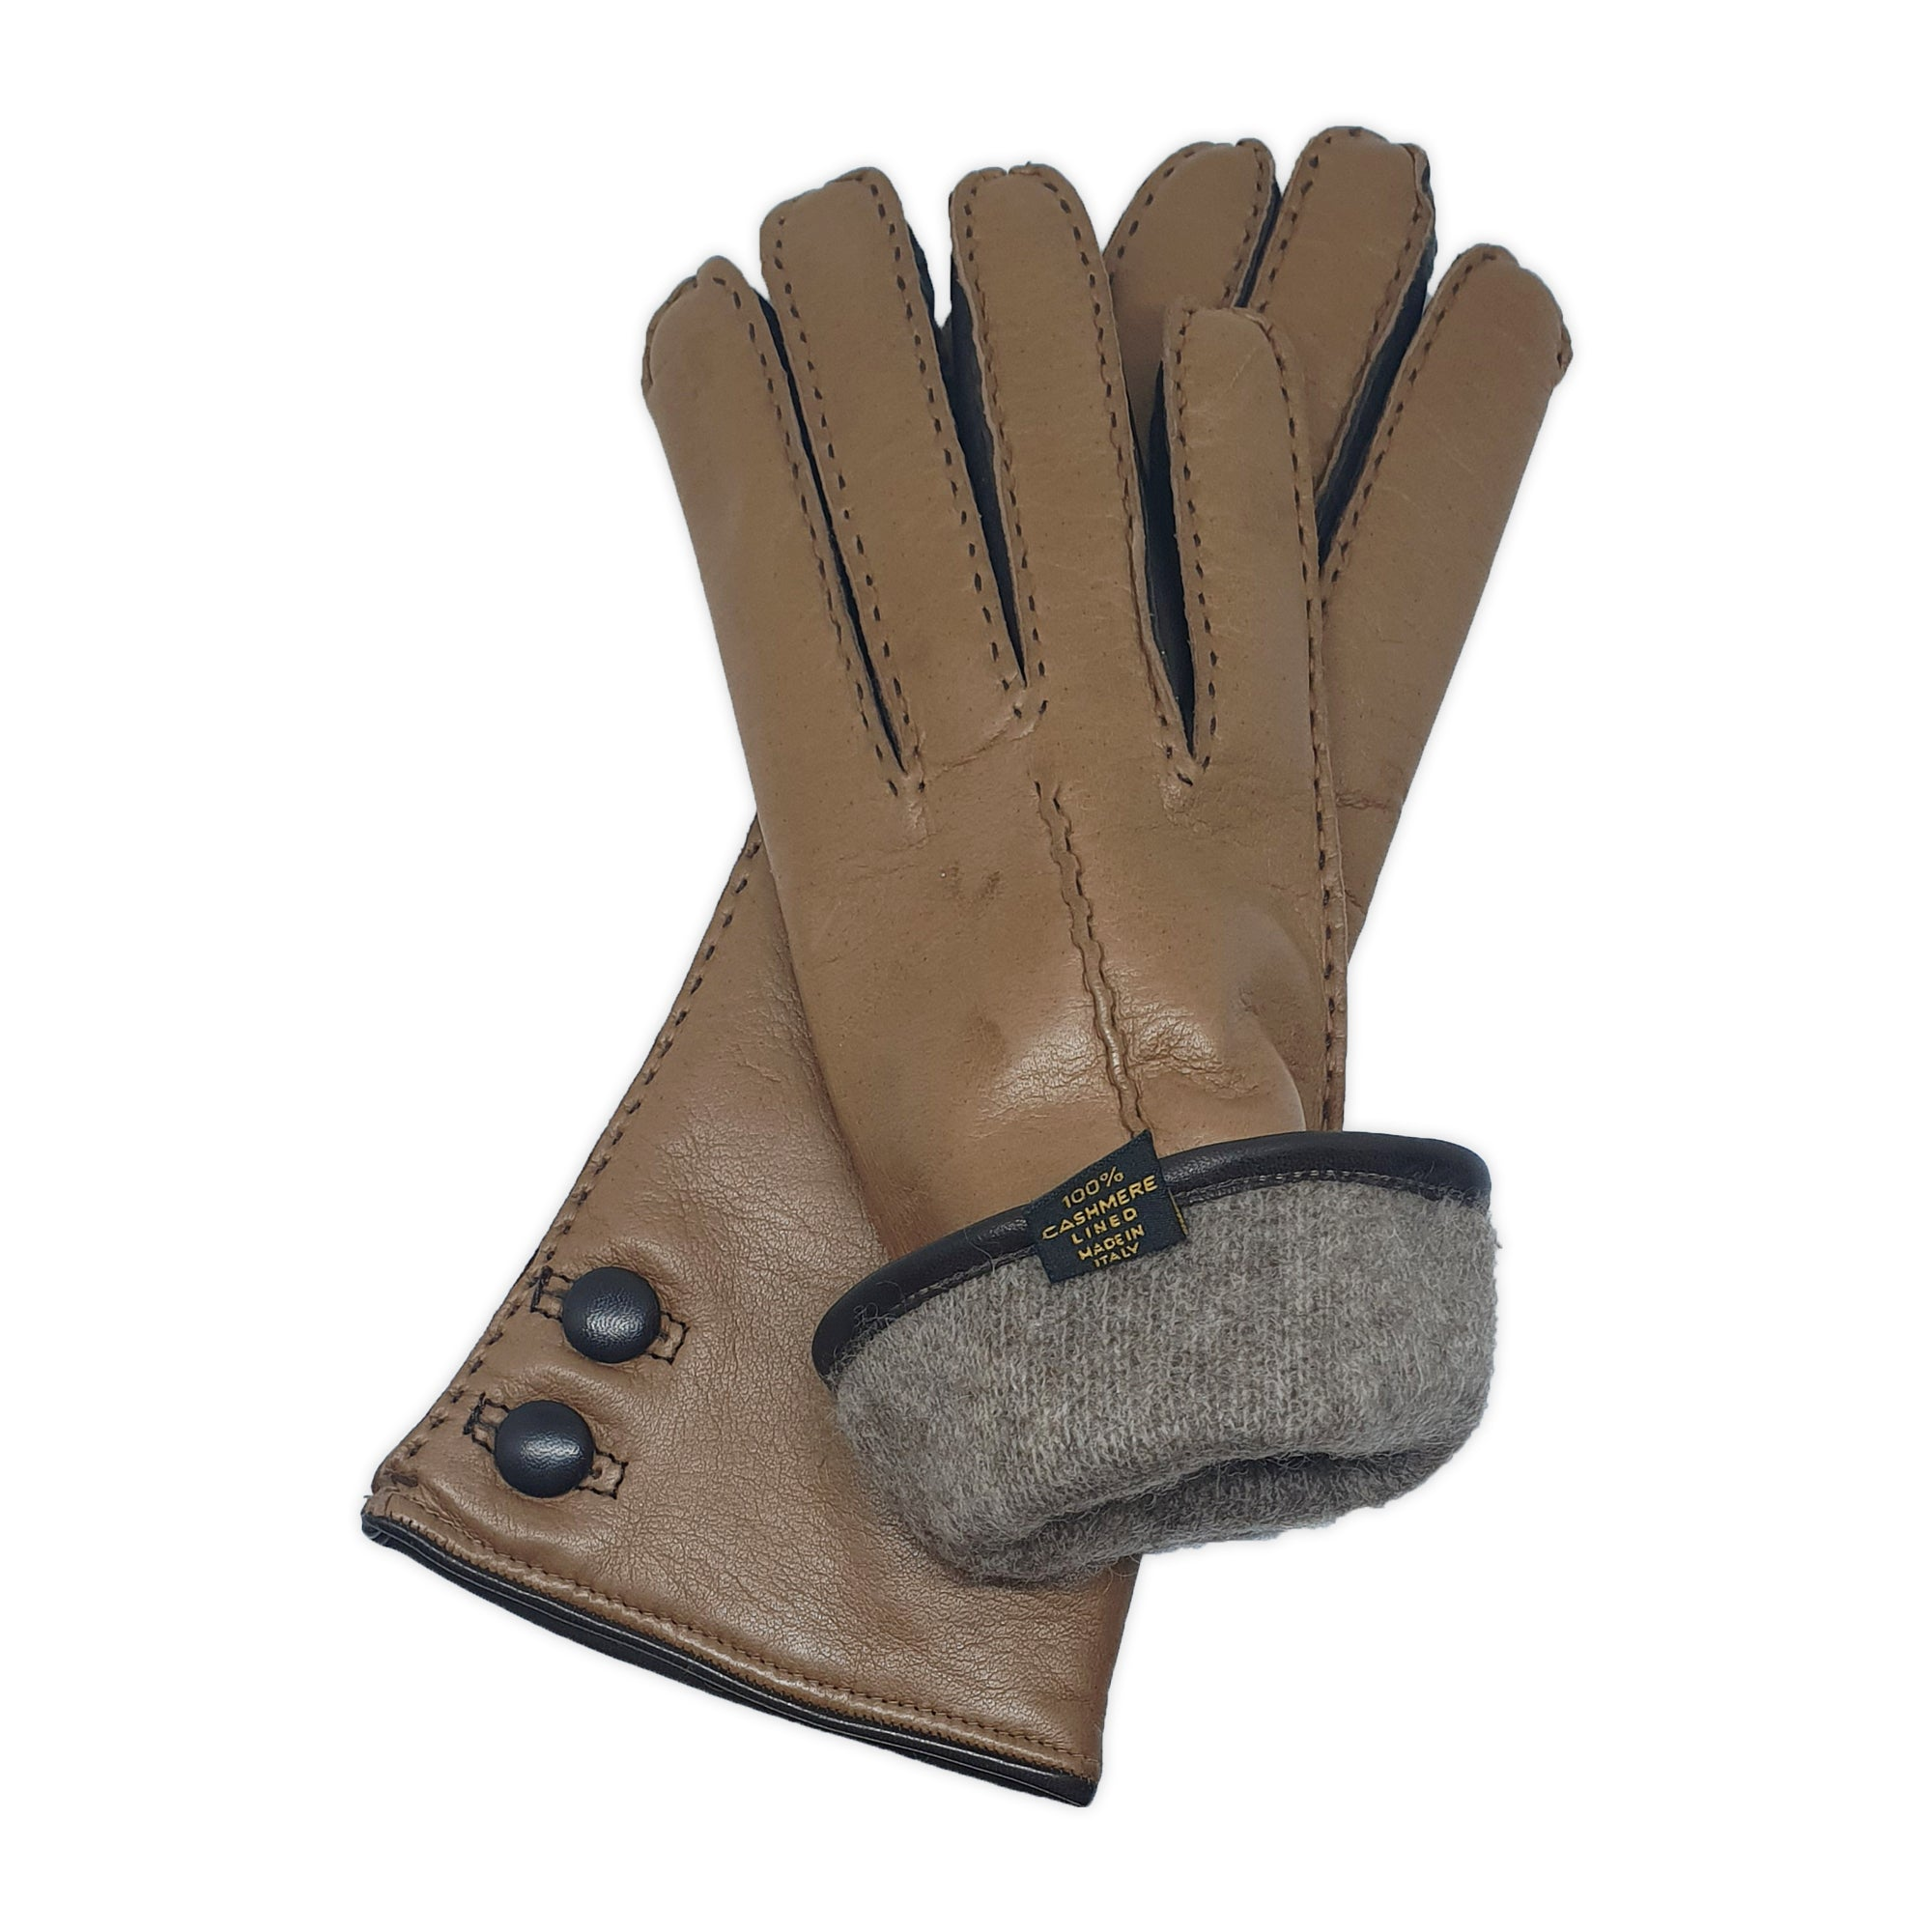 Real leather gloves lined in 100% cashmere, double leather button